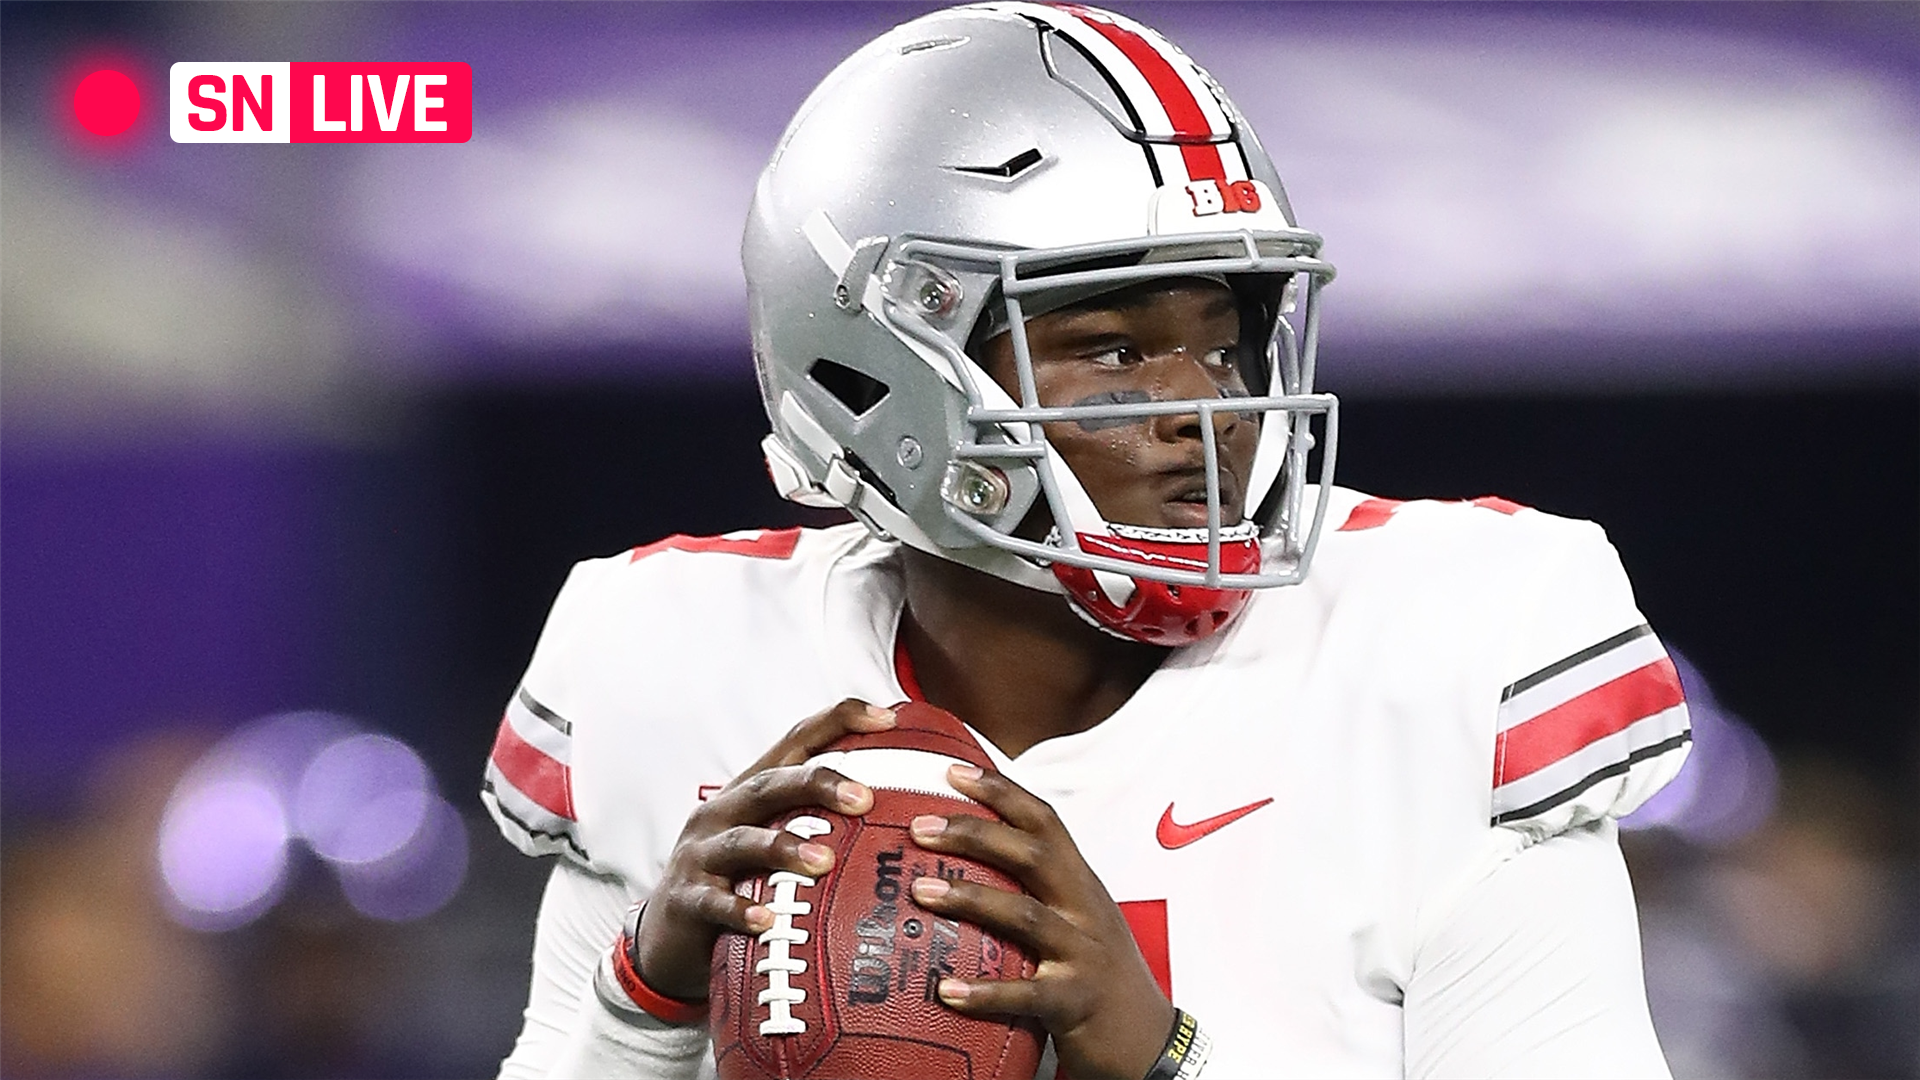 Ohio State Score Ohio State Vs Michigan State Score Live Updates Highlights From